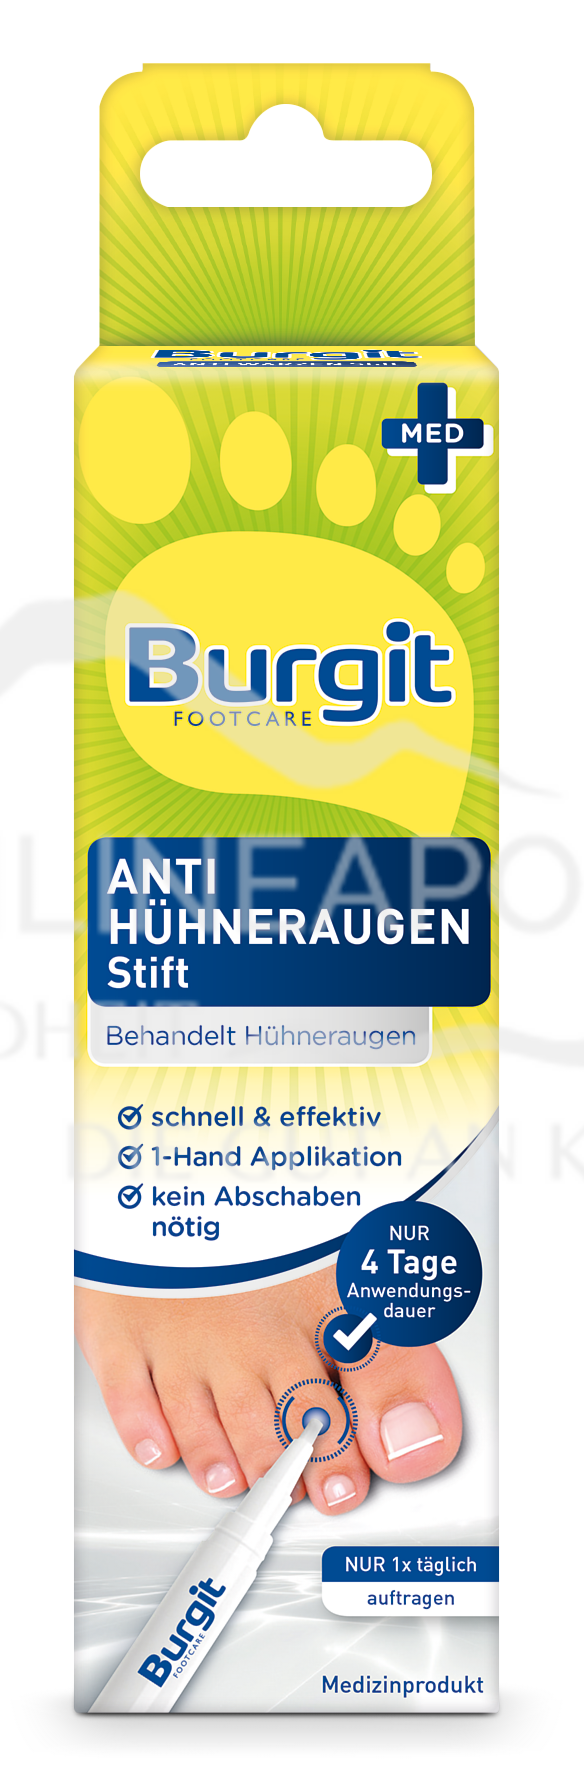 Burgit Anti Hühneraugen Stift